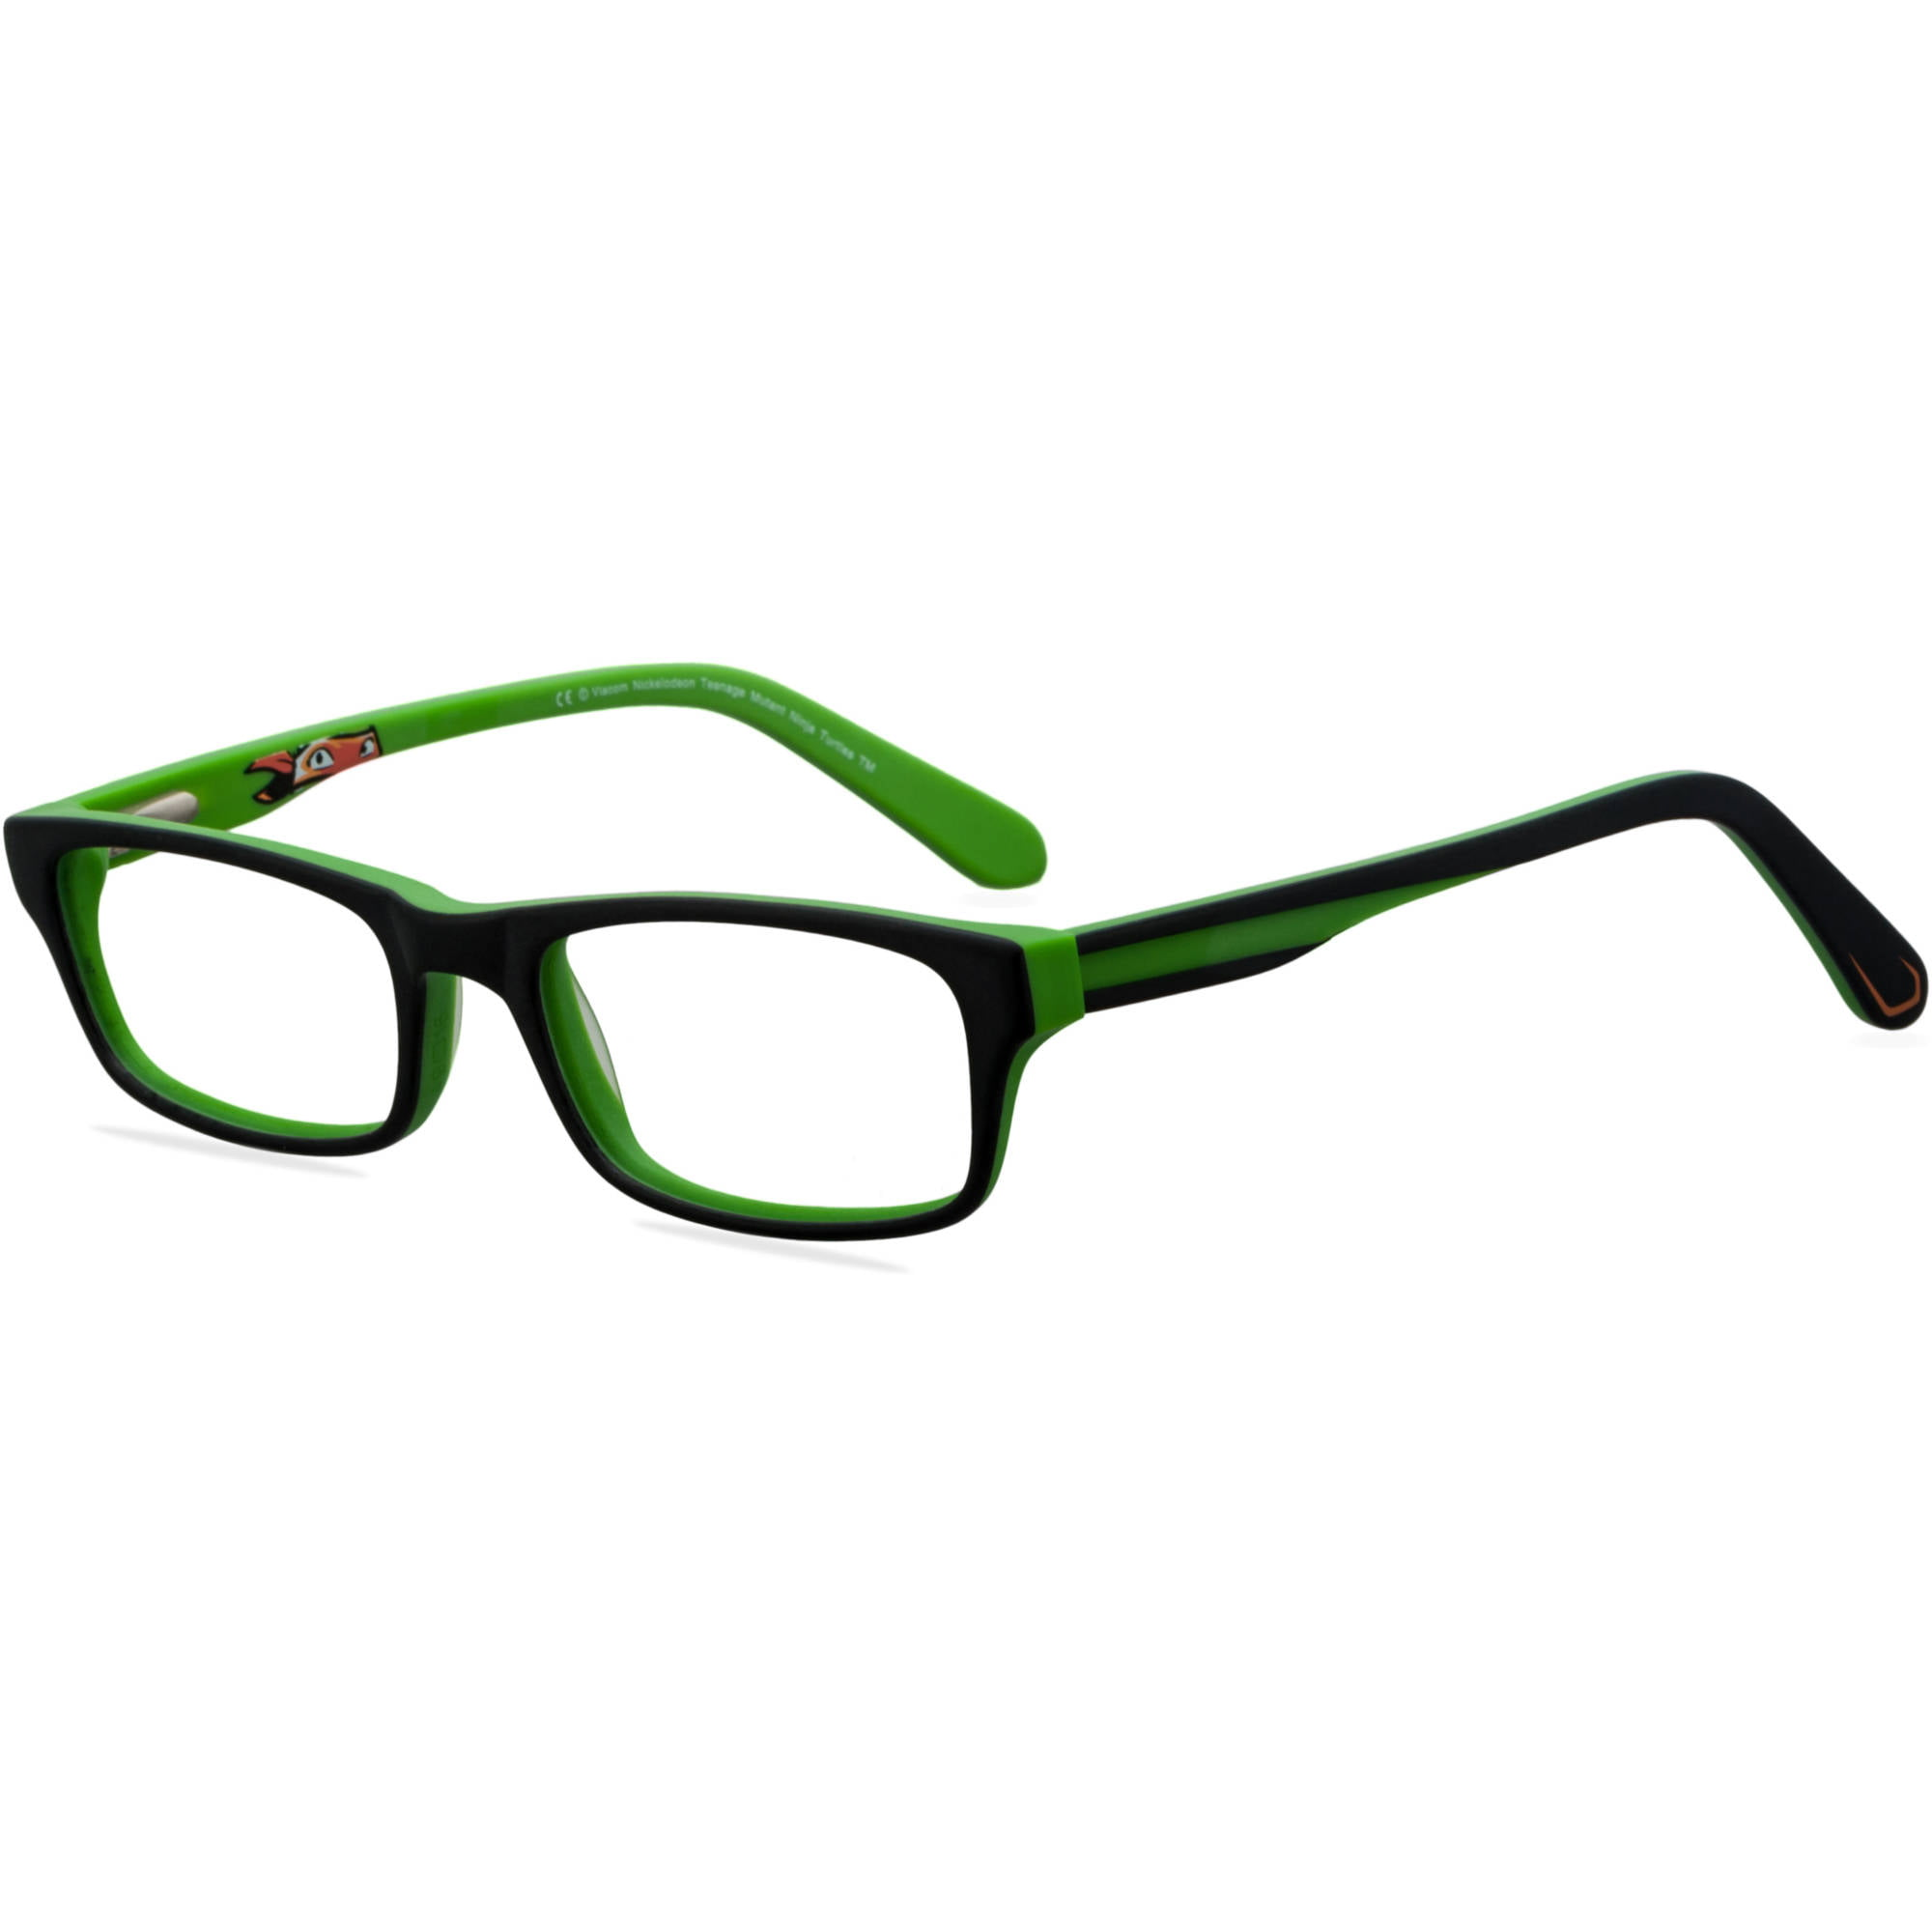 7cd75919fbd Prescription Eyeglasses - Walmart.com